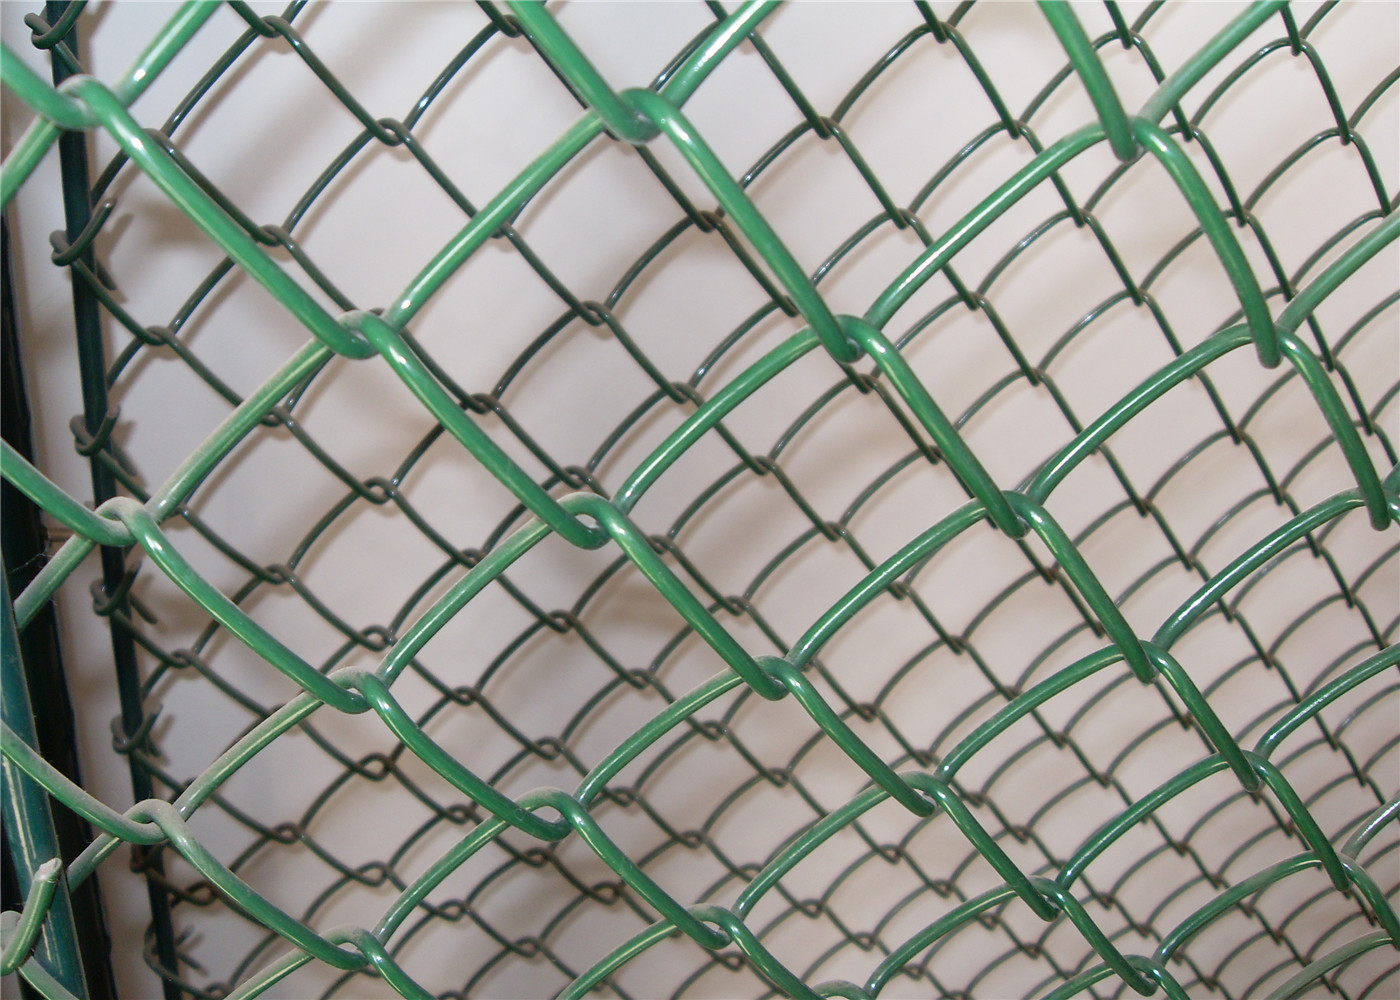 Professional Chain Link Fence cyclone wire fence roll 1.22m x 25m ...